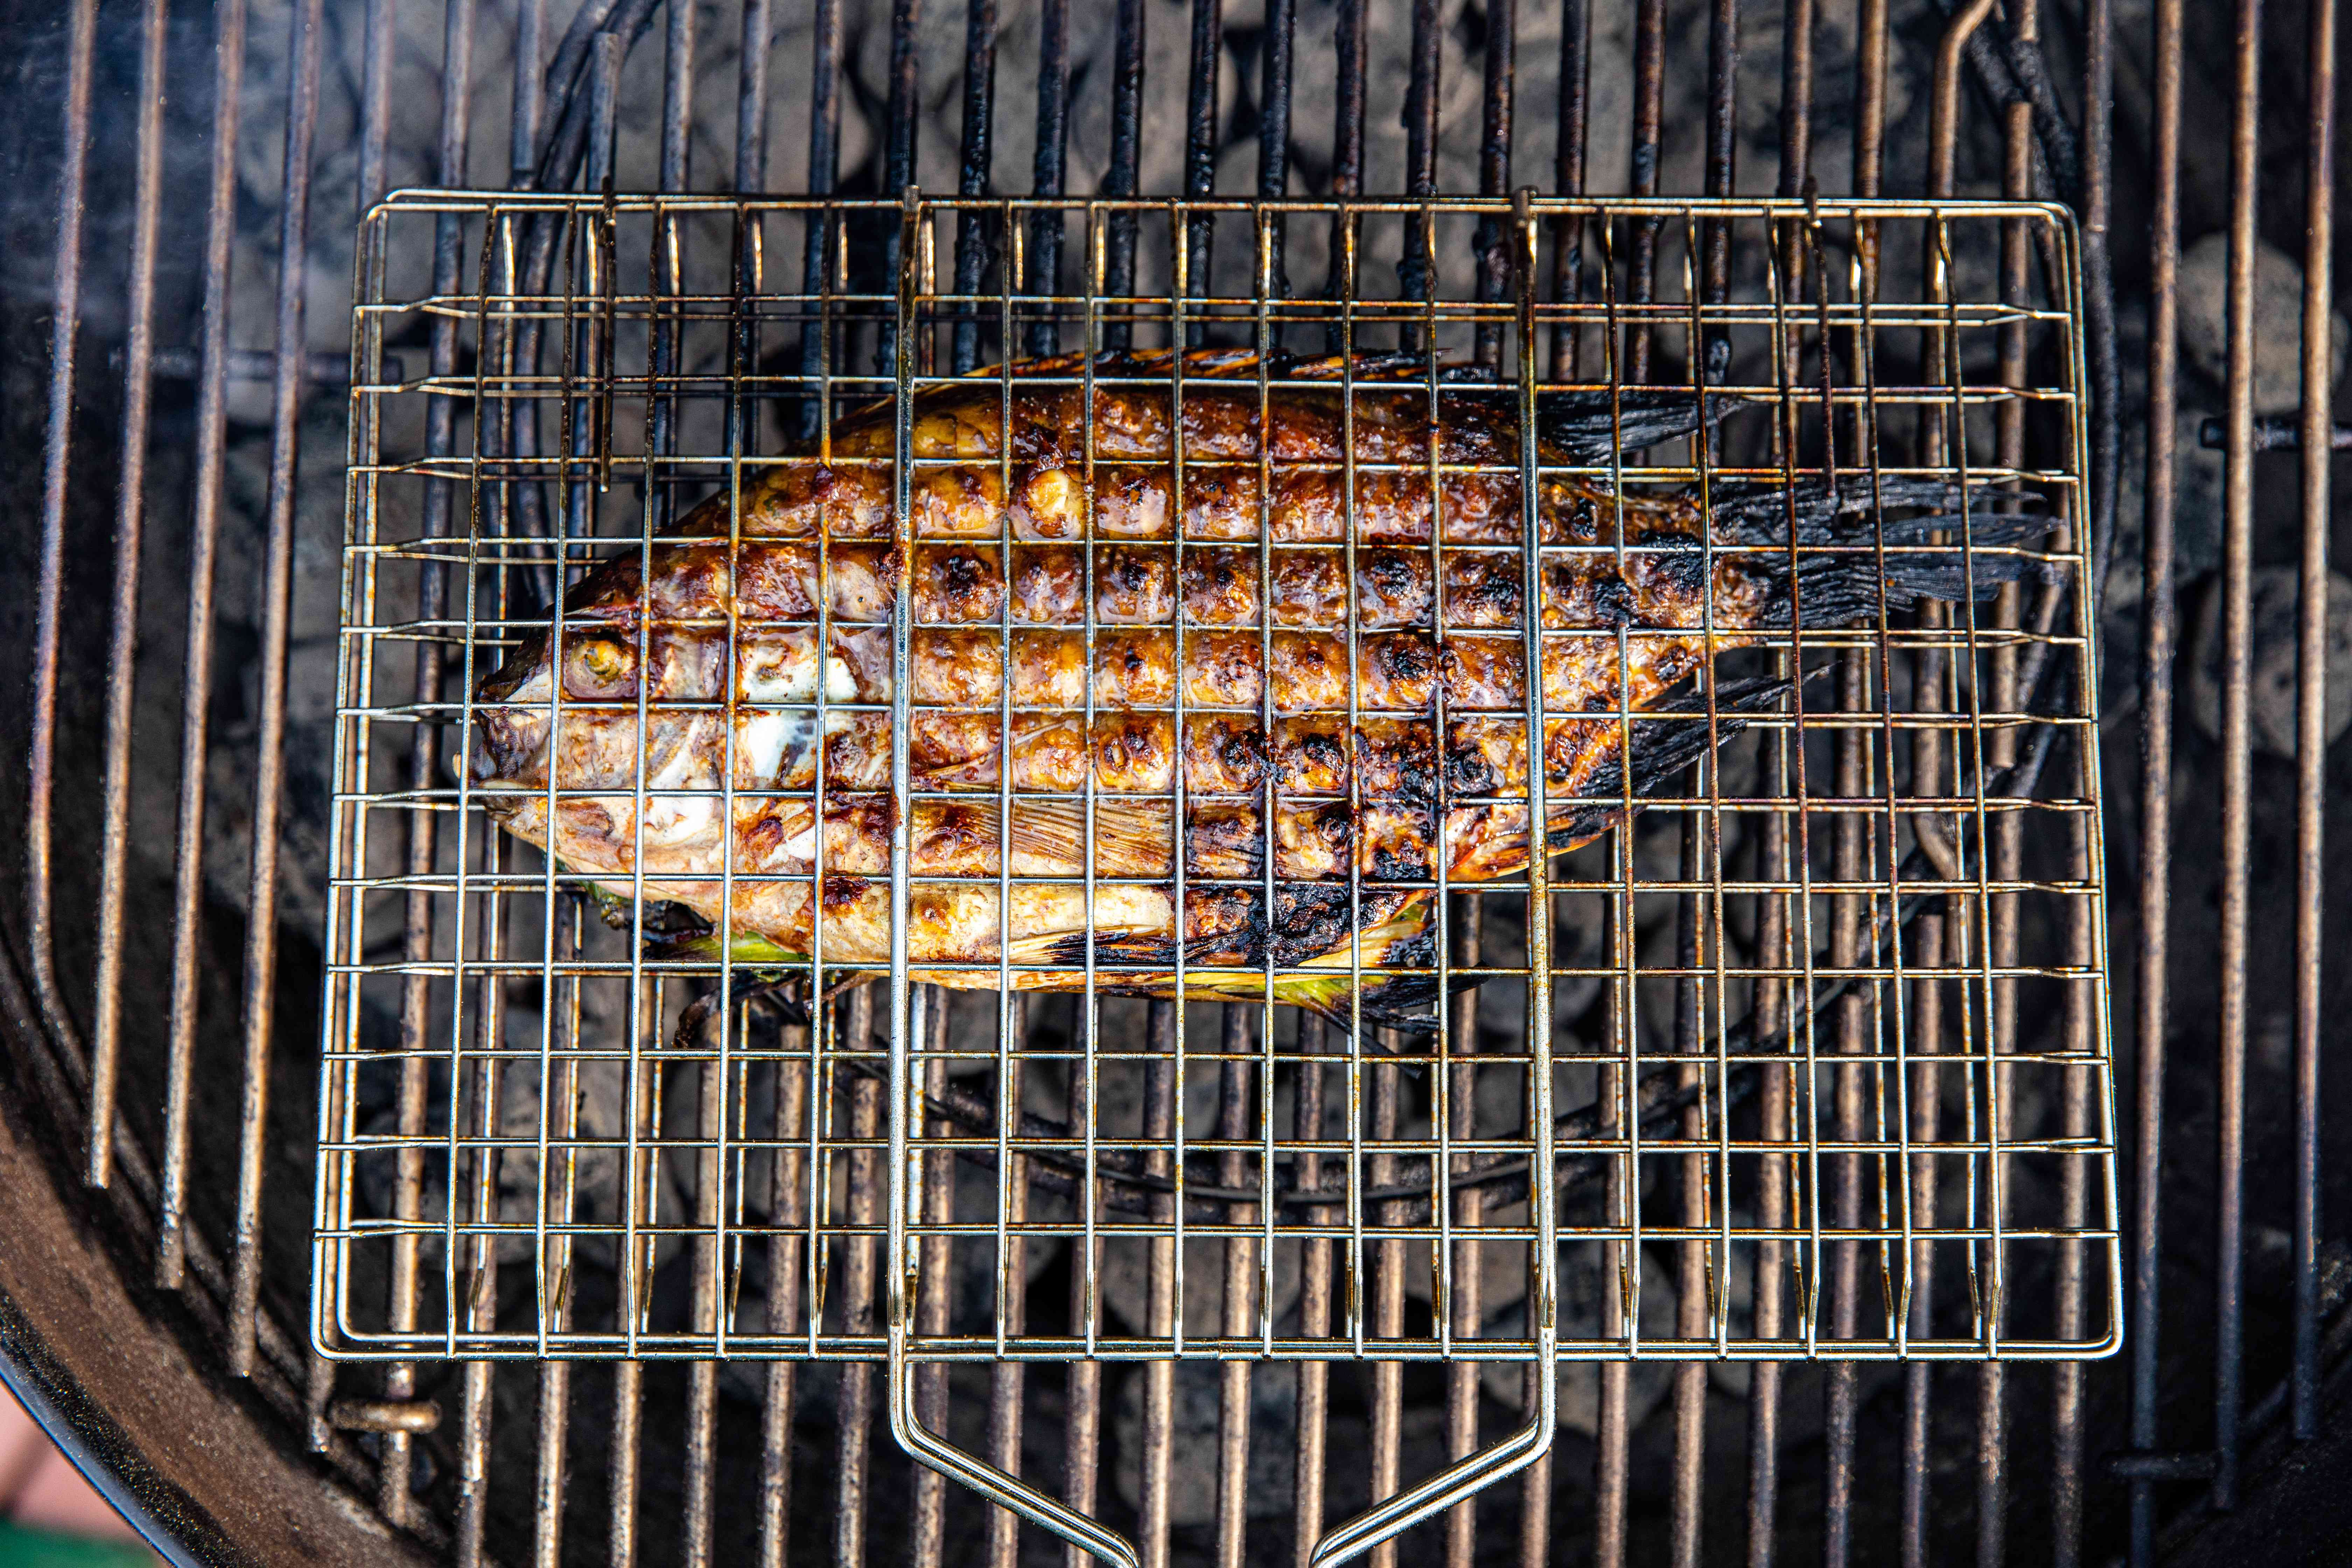 Whole fish stuffed with herbs and chilies on the grill.